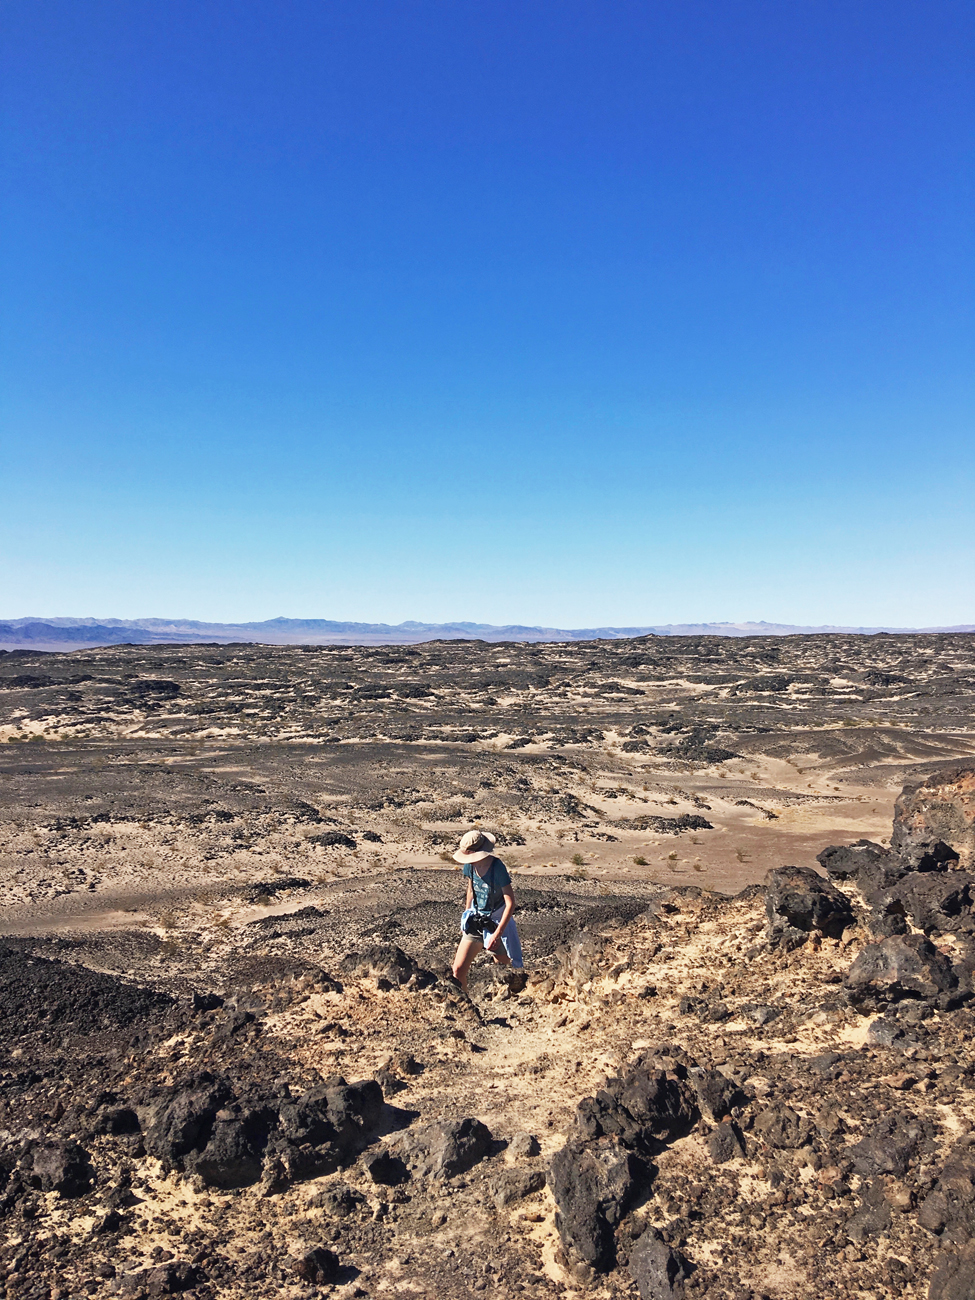 Christina on the trail to Amboy Crater surrounded by sand and an extensive field of black lava rock